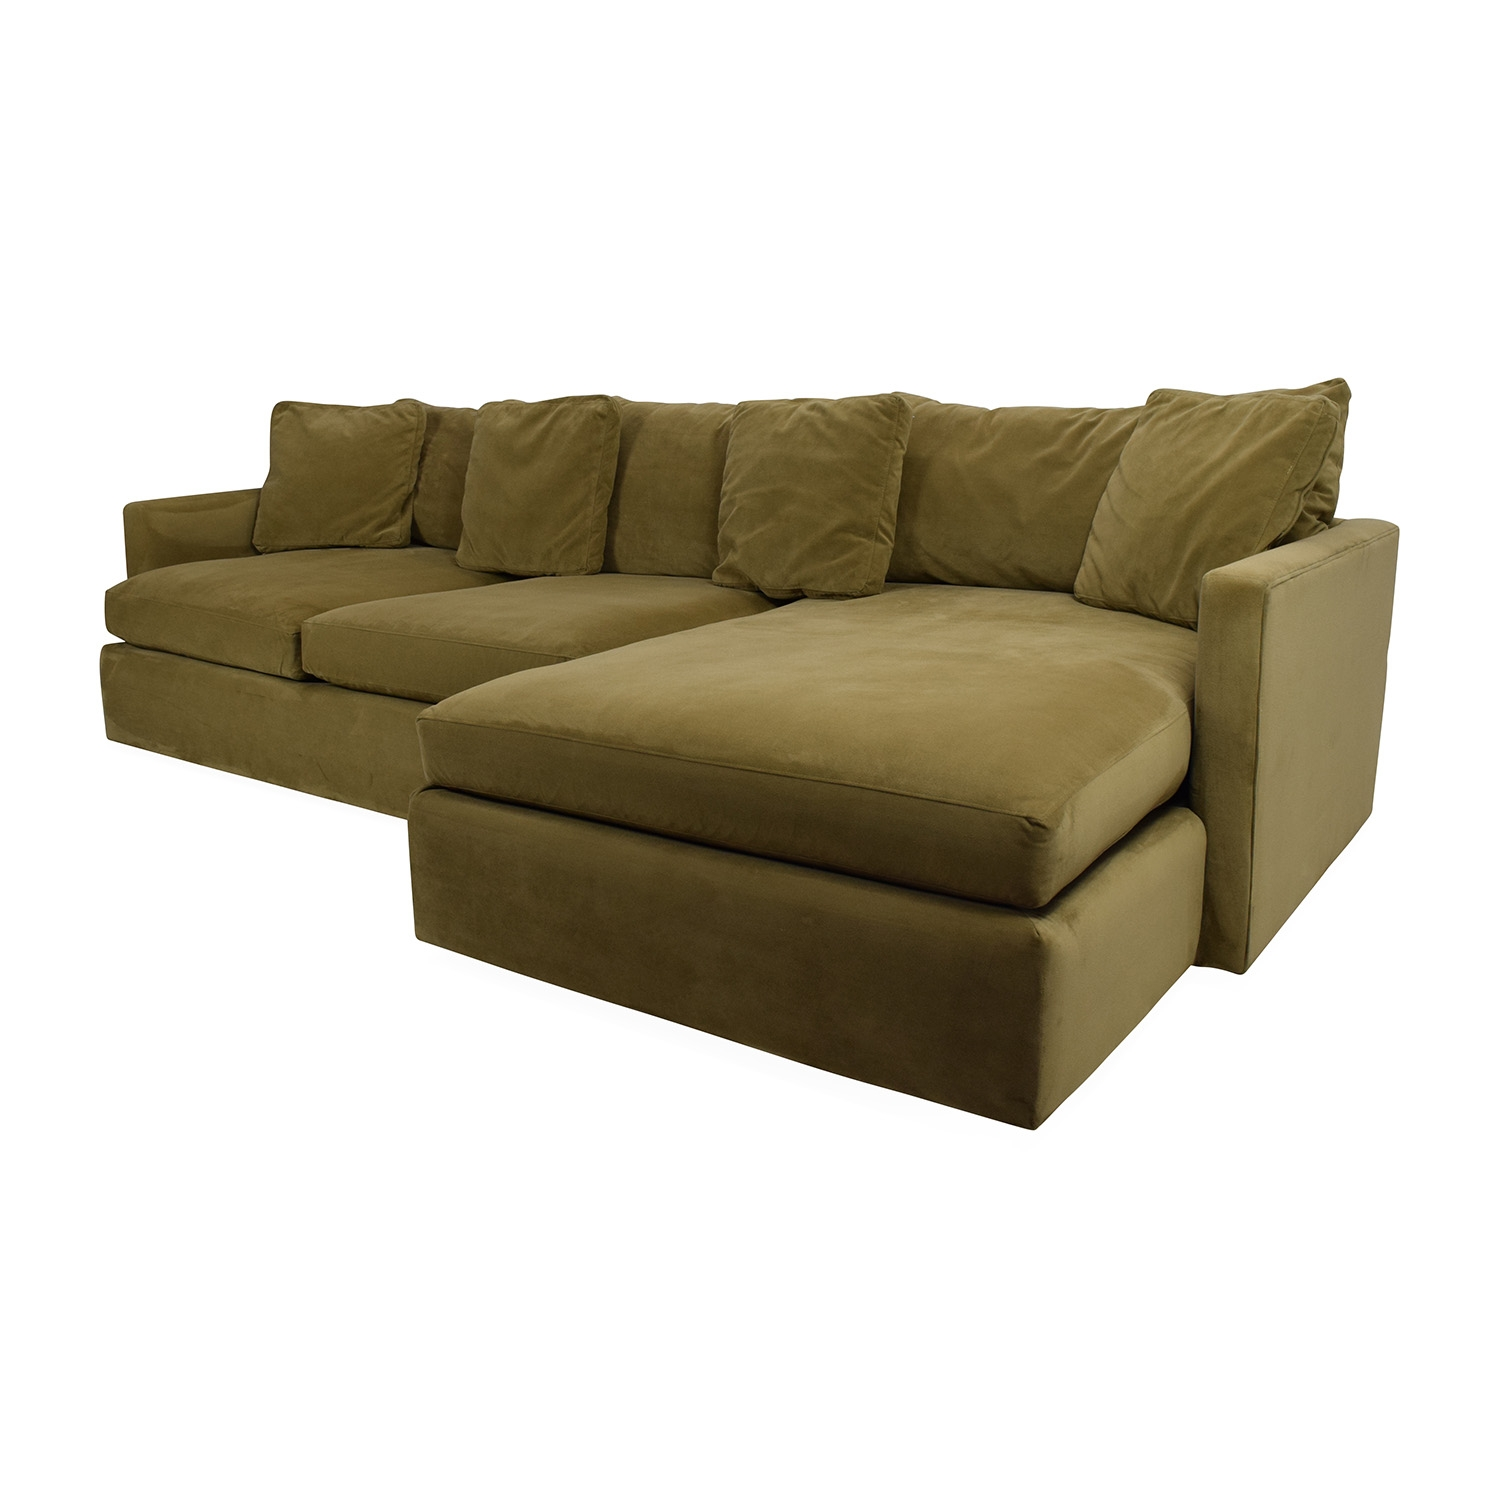 65 Off Crate And Barrel Crate And Barrel Lounge Ii Sectional Intended For Crate And Barrel Sectional Sofas (#2 of 12)